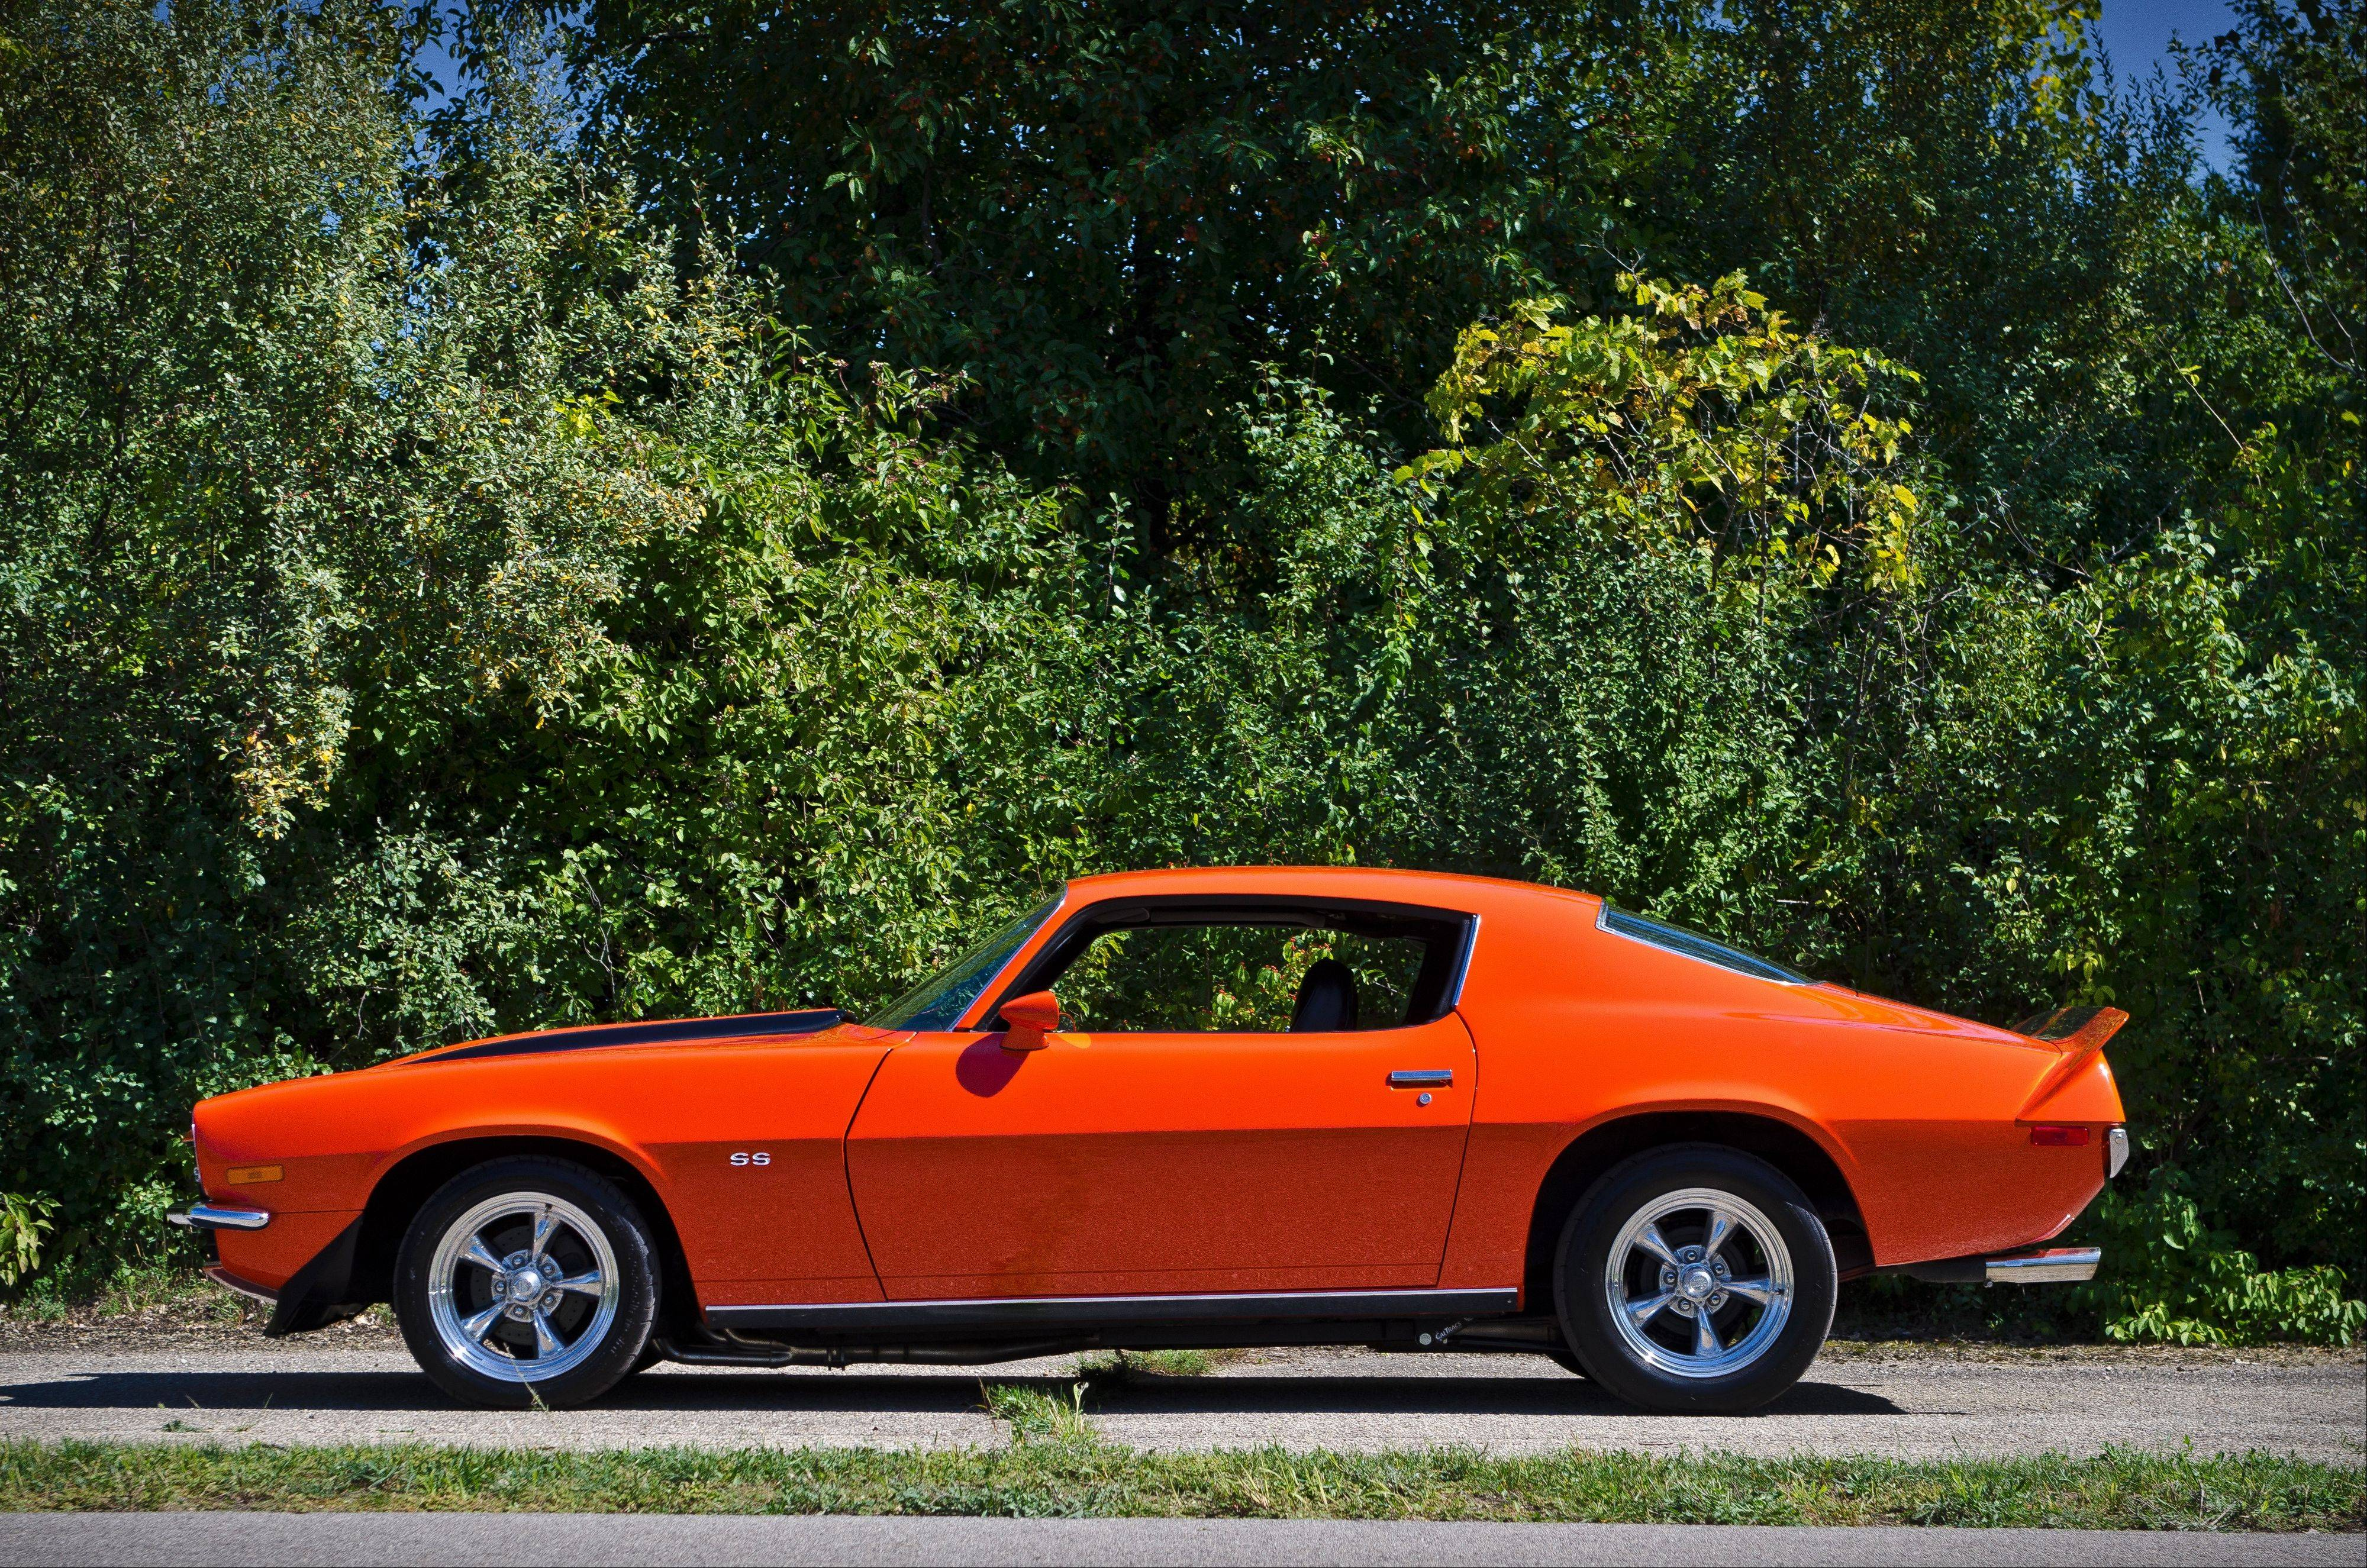 A soldier serving overseas in 1972 first ordered this Ontario Orange Camaro SS from a Chevy dealer in New Jersey.